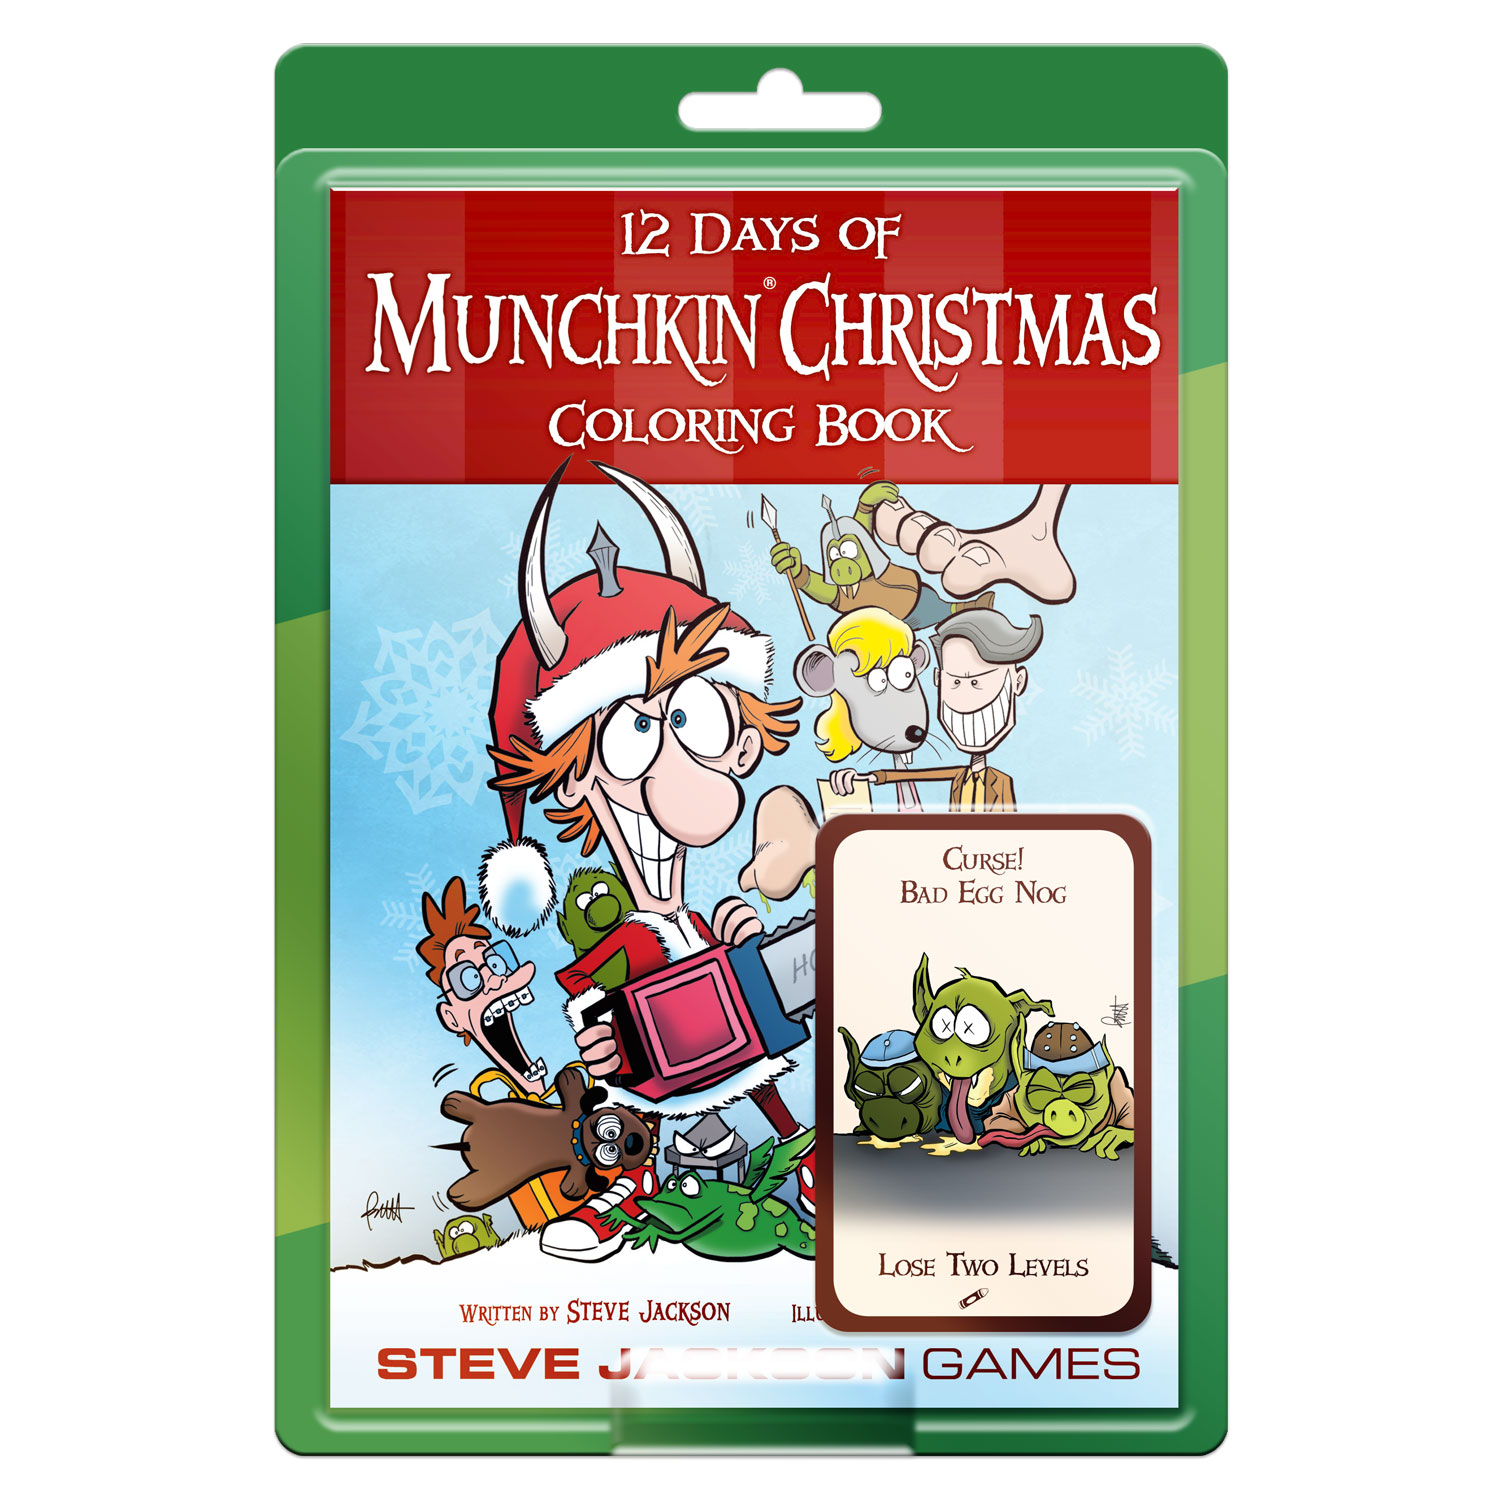 Christmas Coloring Book Games With 12 Days Of Munchkin